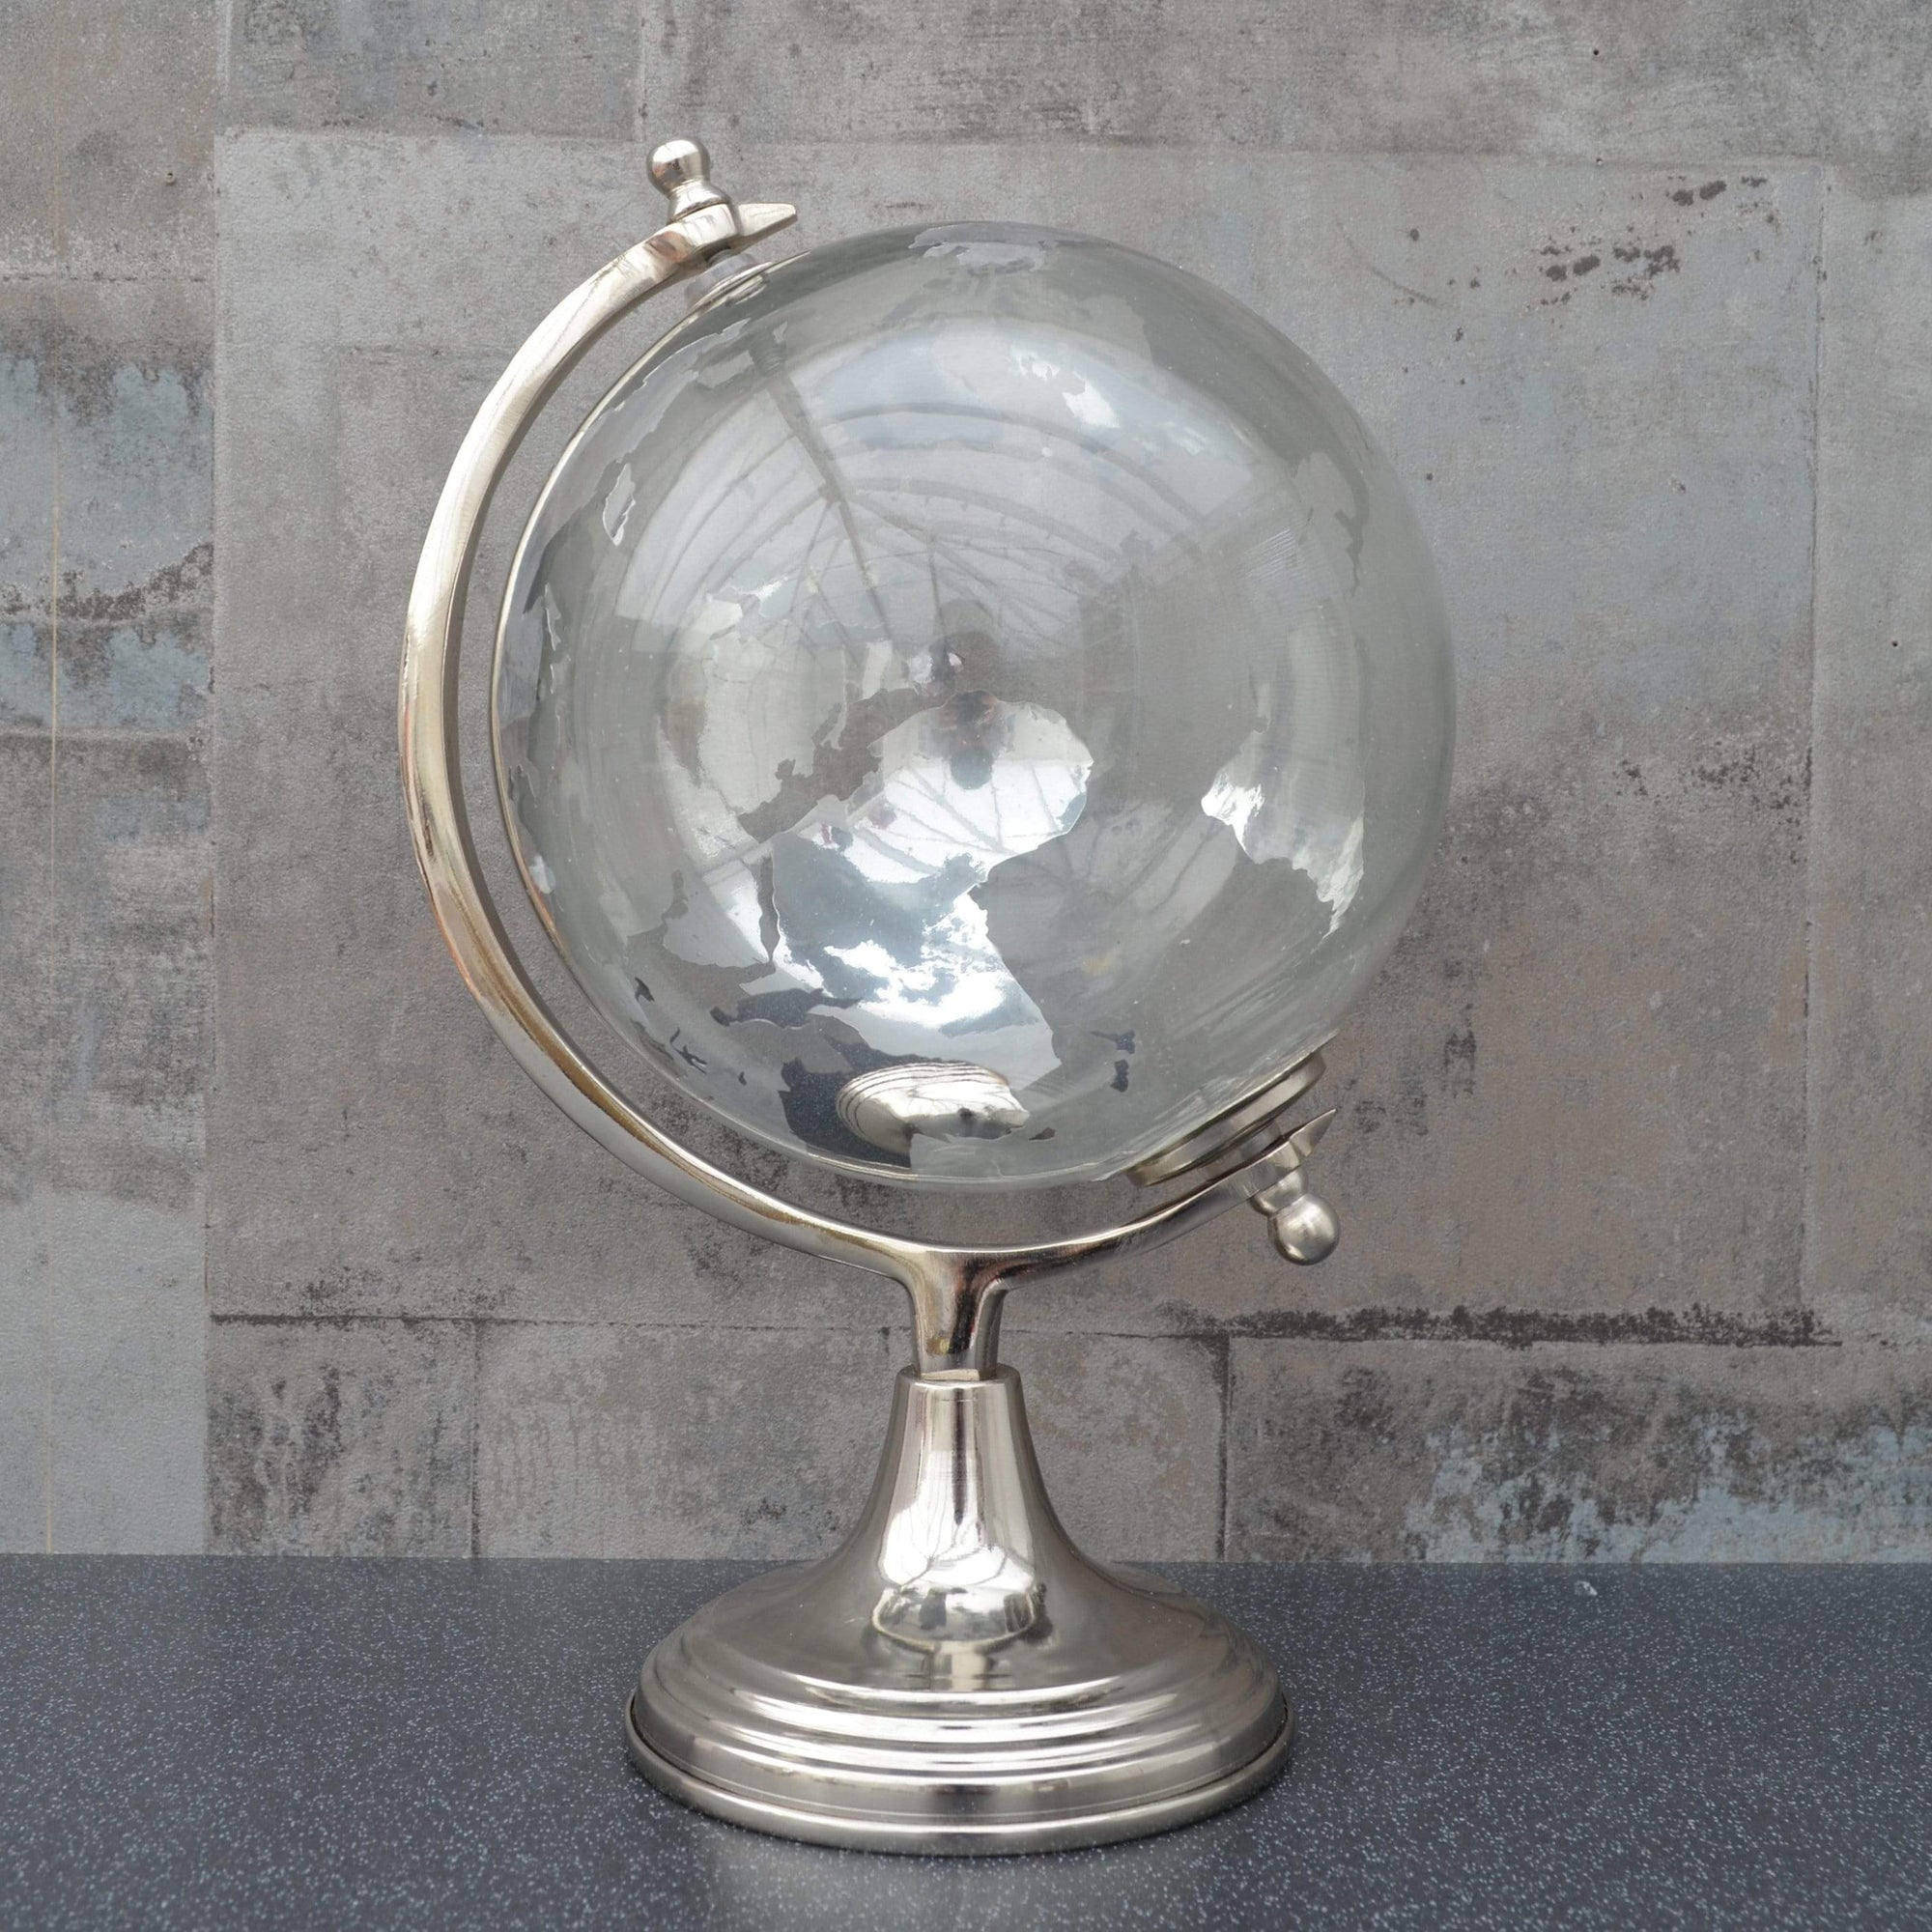 Large Glass Globe on Metal Stand Silver 32.5cm 1PK